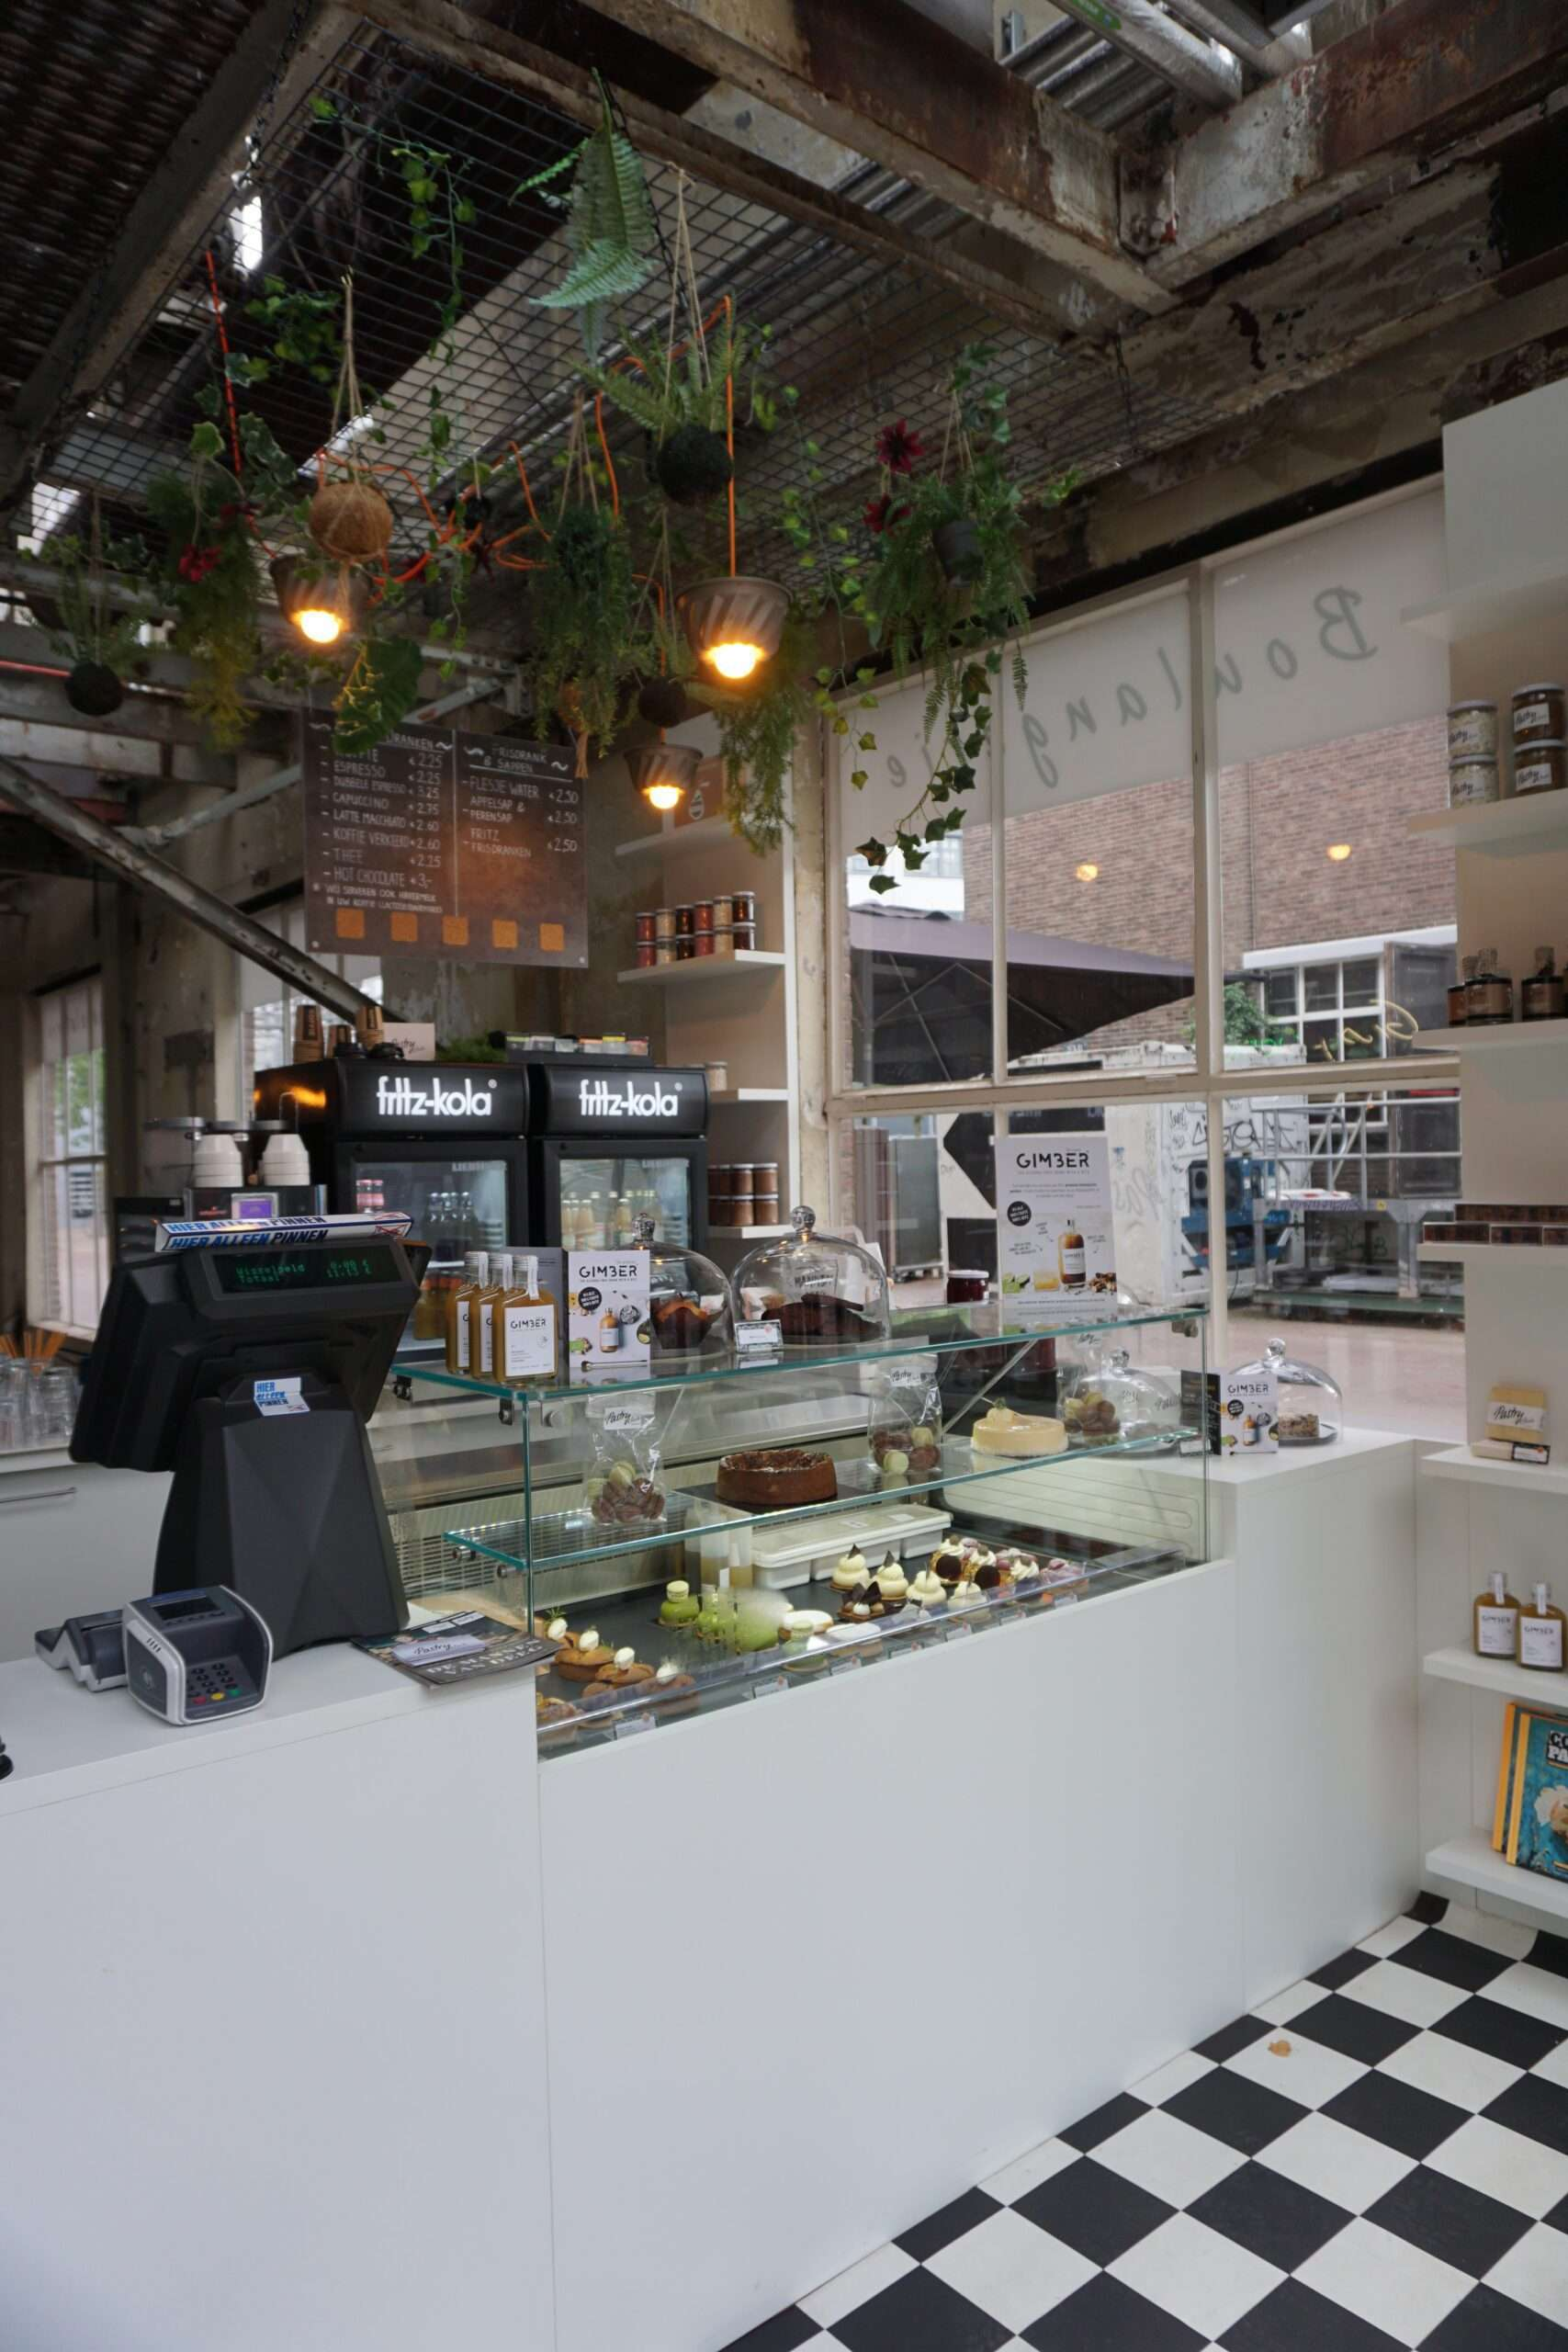 Inside Pastry Club in Eindhoven, pay counter with a display cabinet of individual cakes. Plants hanging from the ceiling above